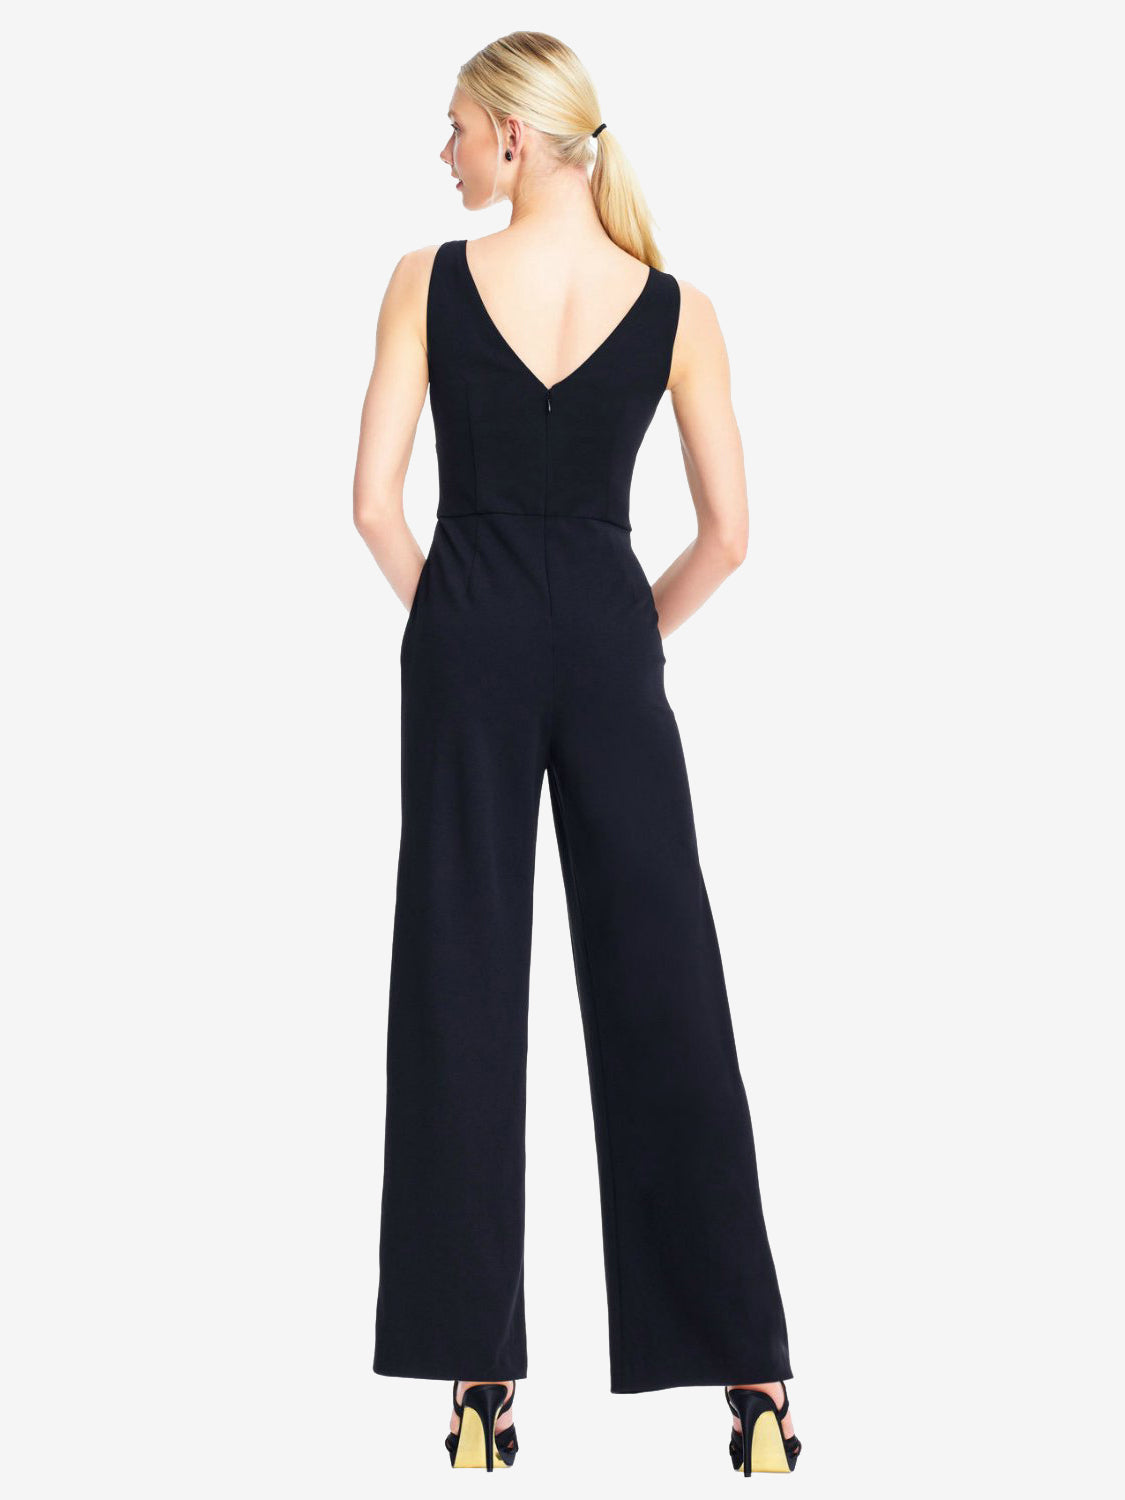 Adrianna Papell V Neck Jumpsuit Black